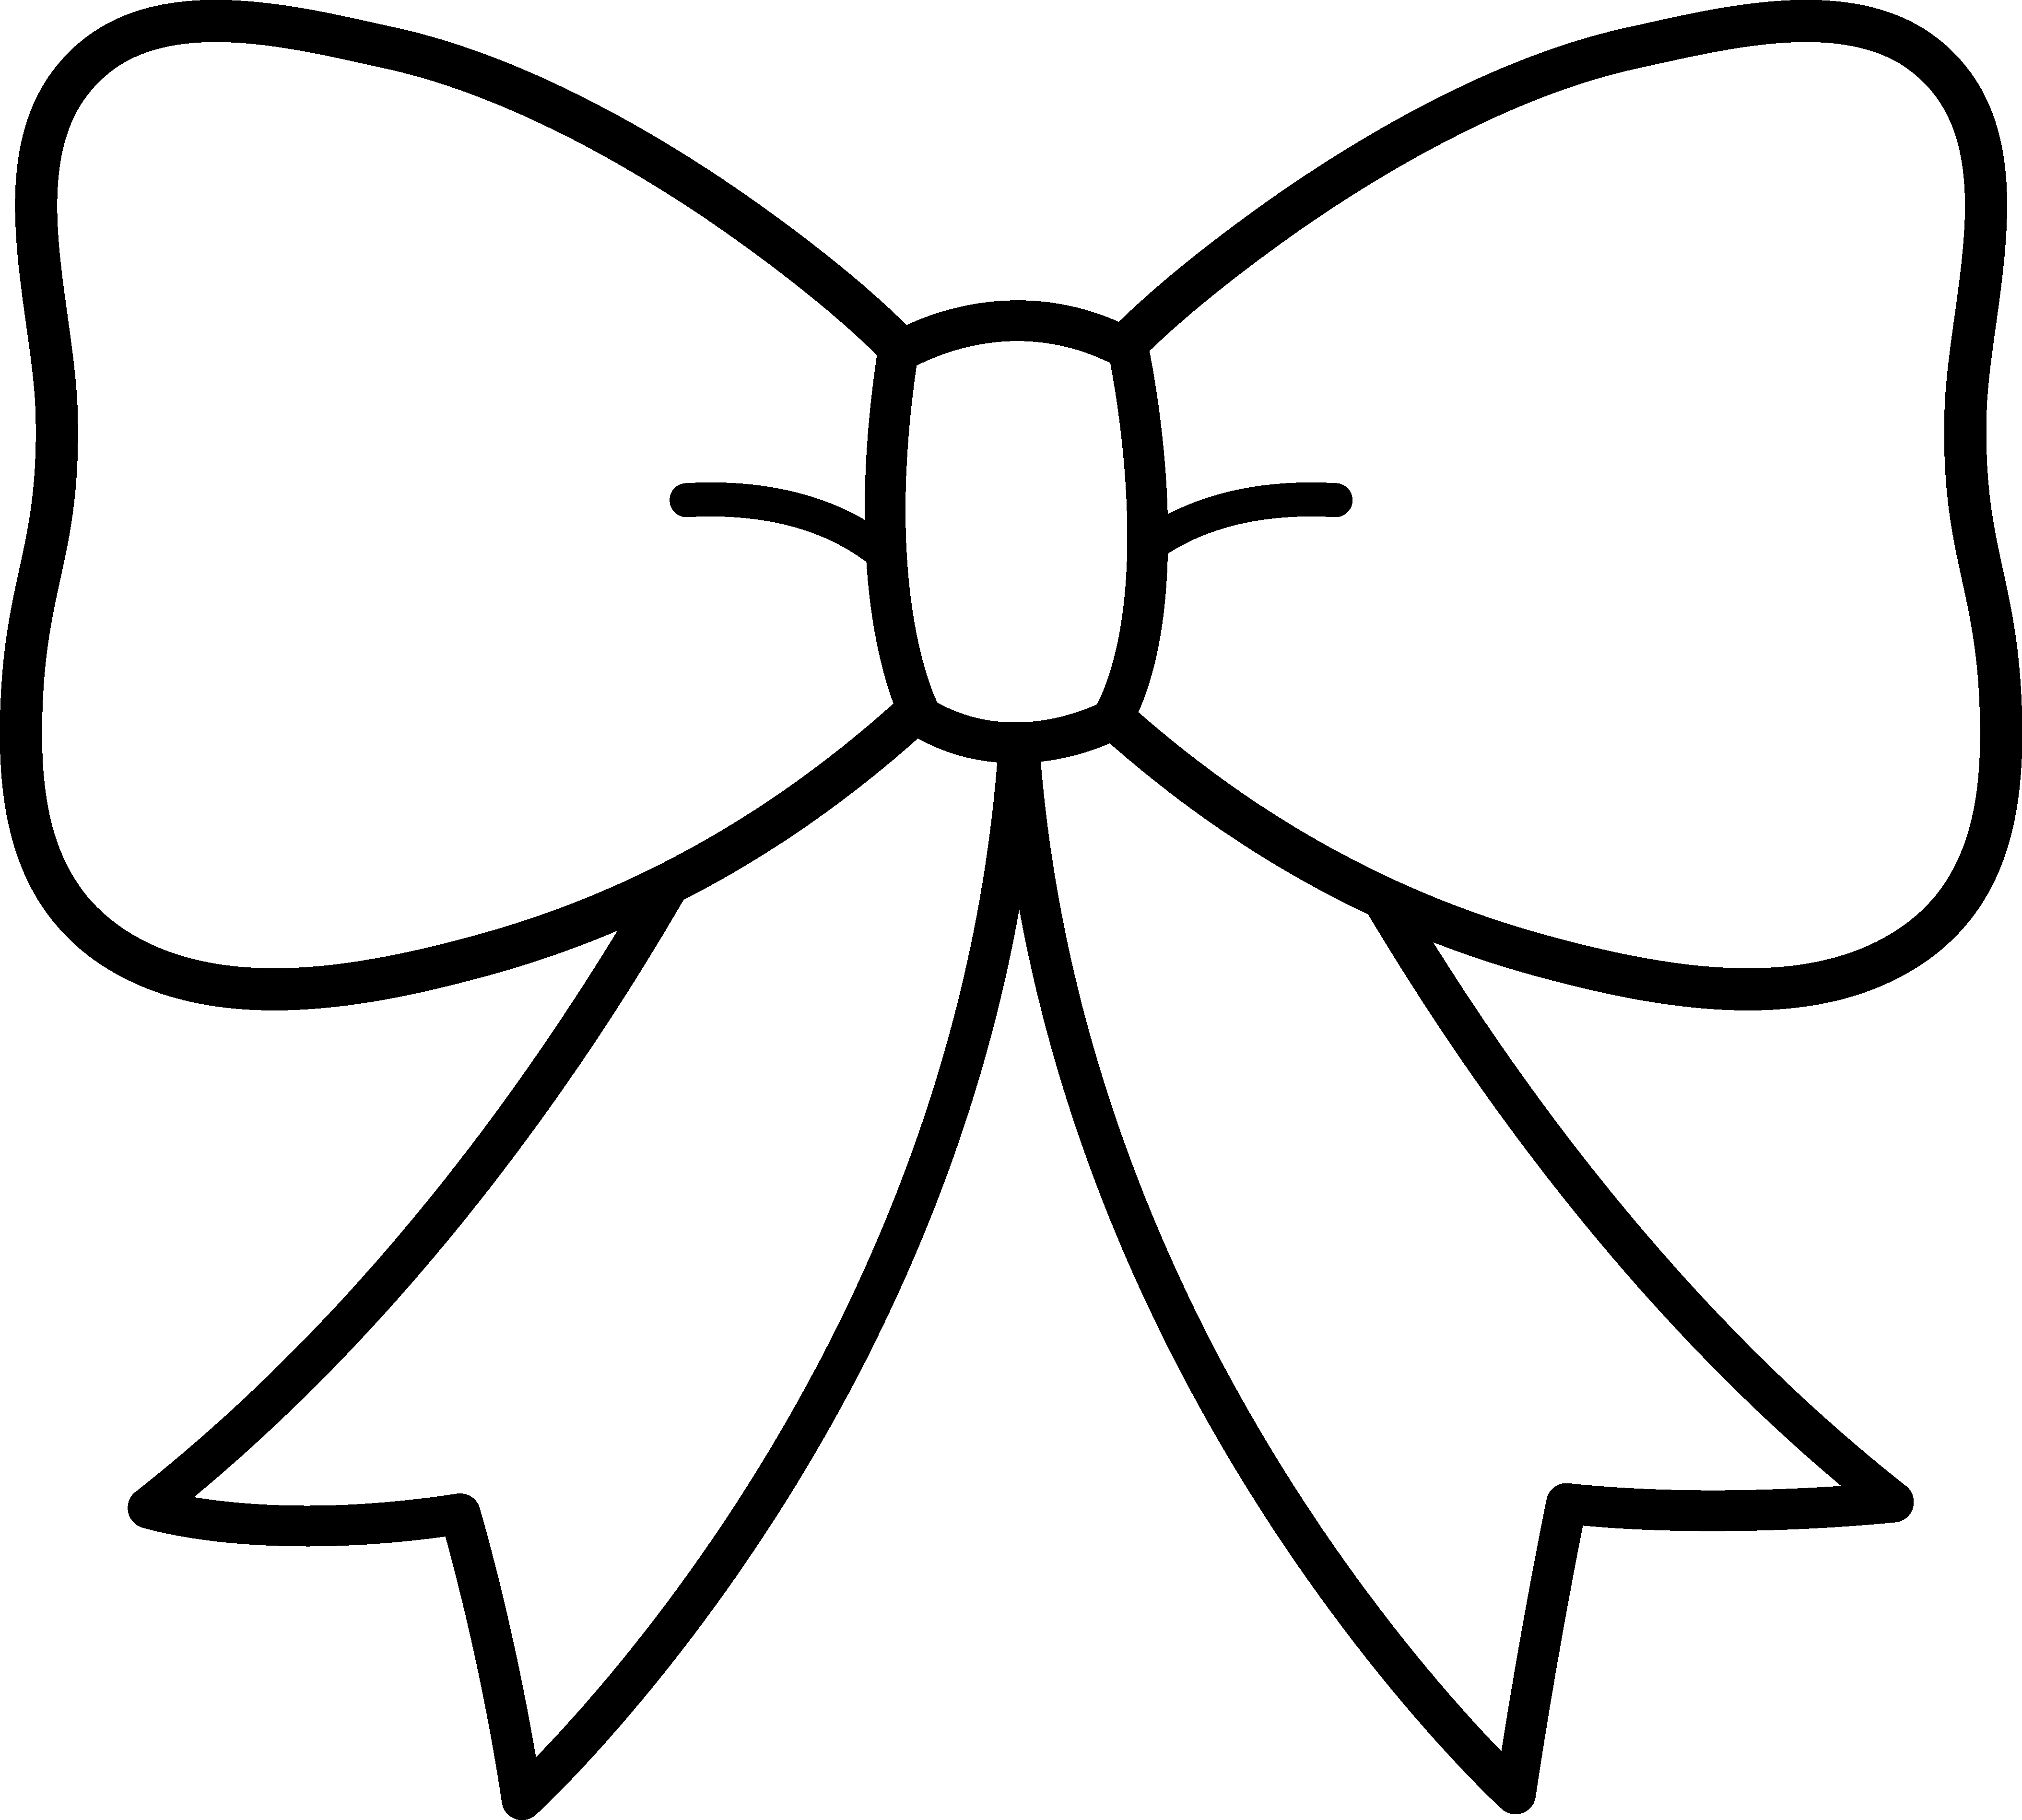 Hair Bow Drawing At Getdrawings Com Free For Personal